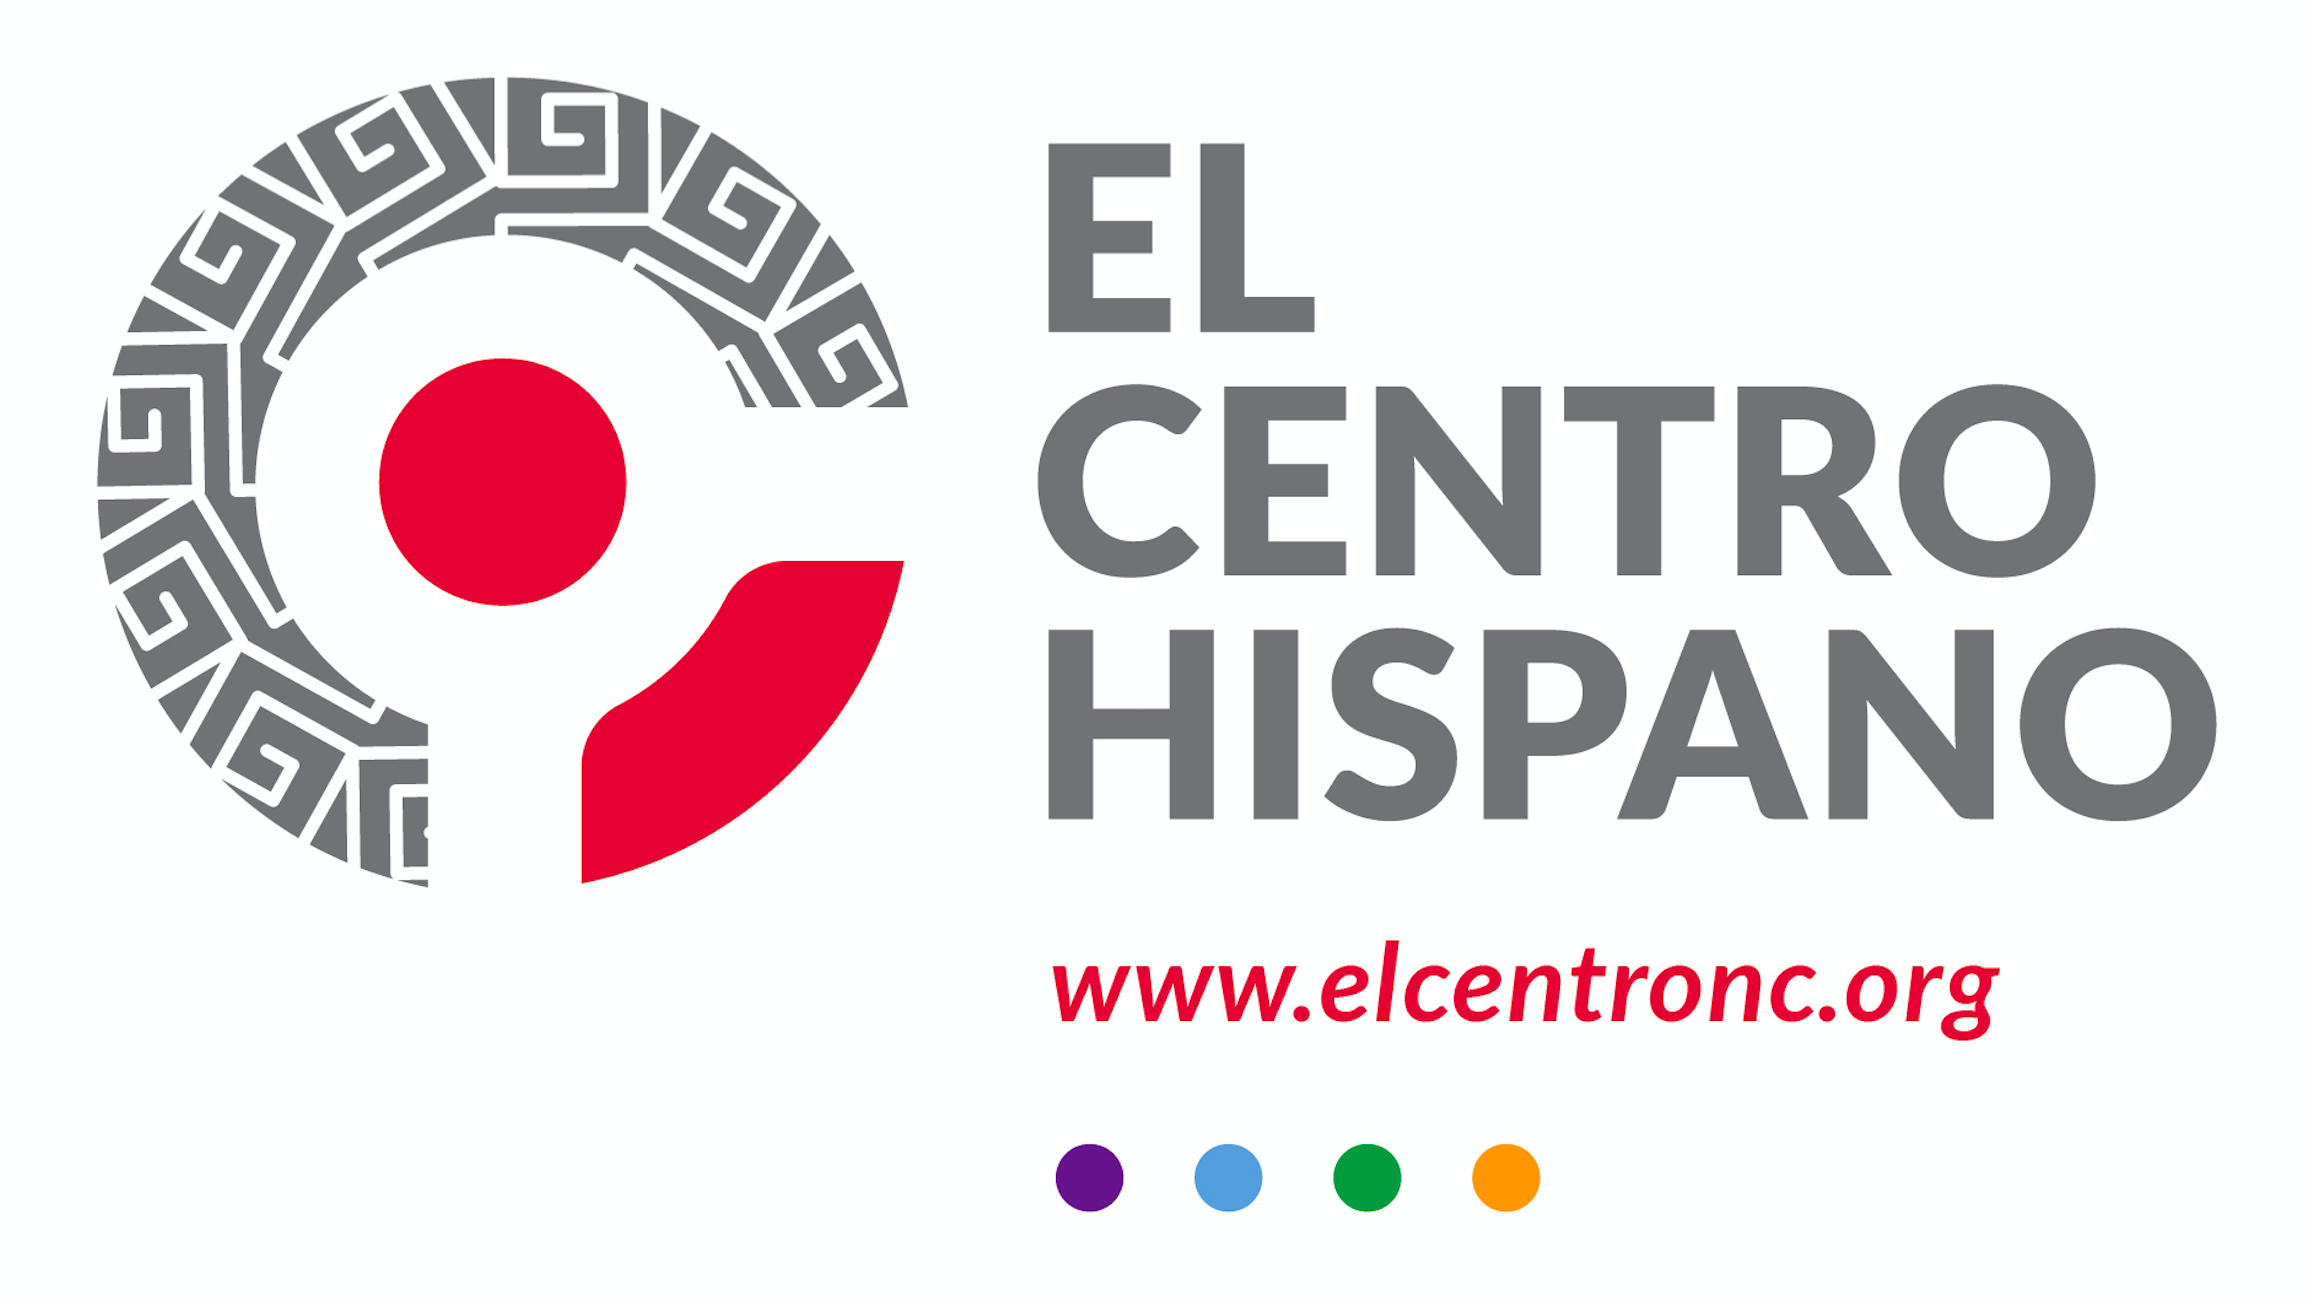 ElCentroHispanoLogo Opens in new window